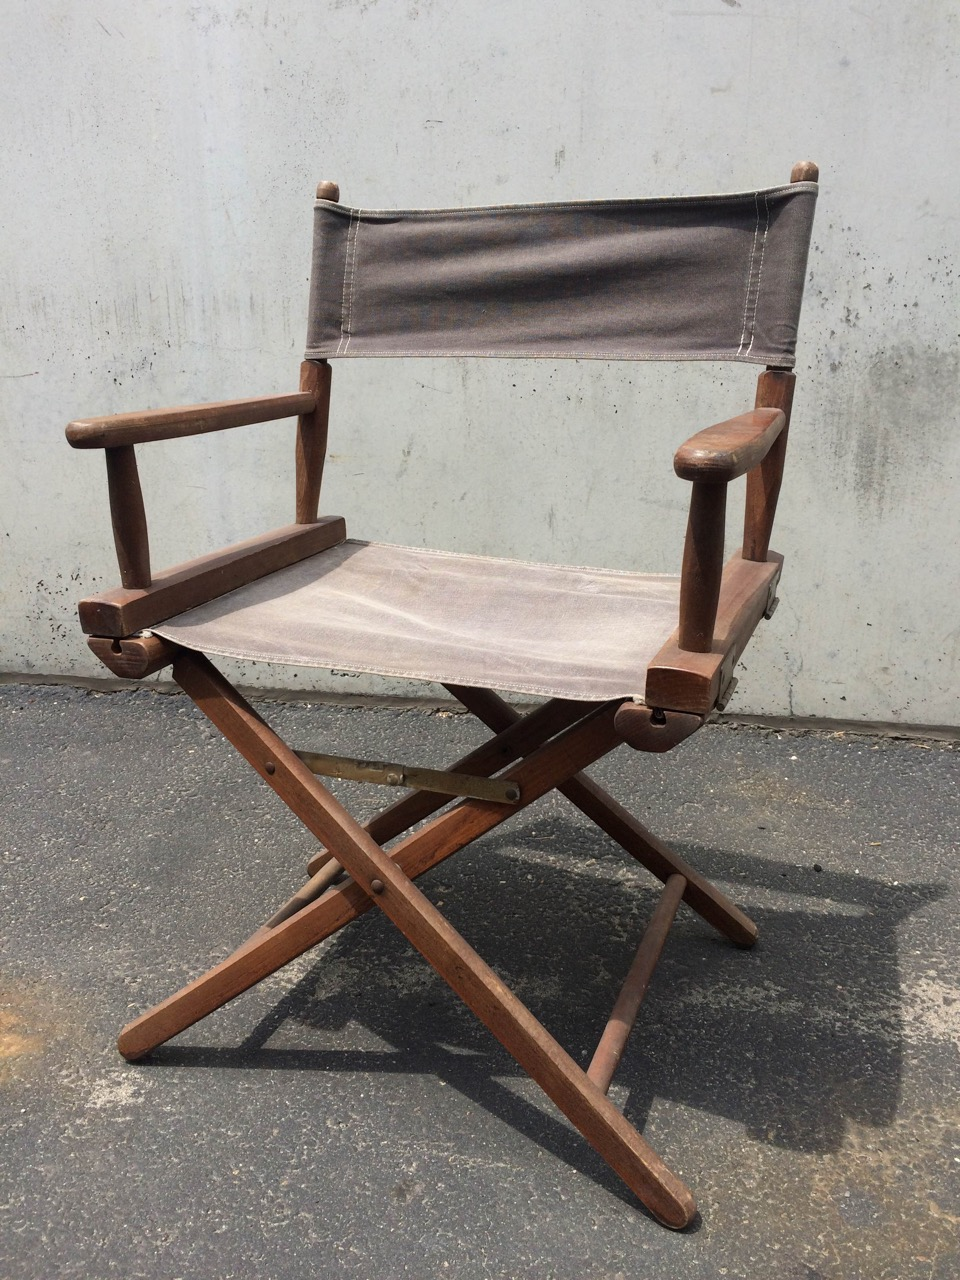 RSS Antique directors chair $50